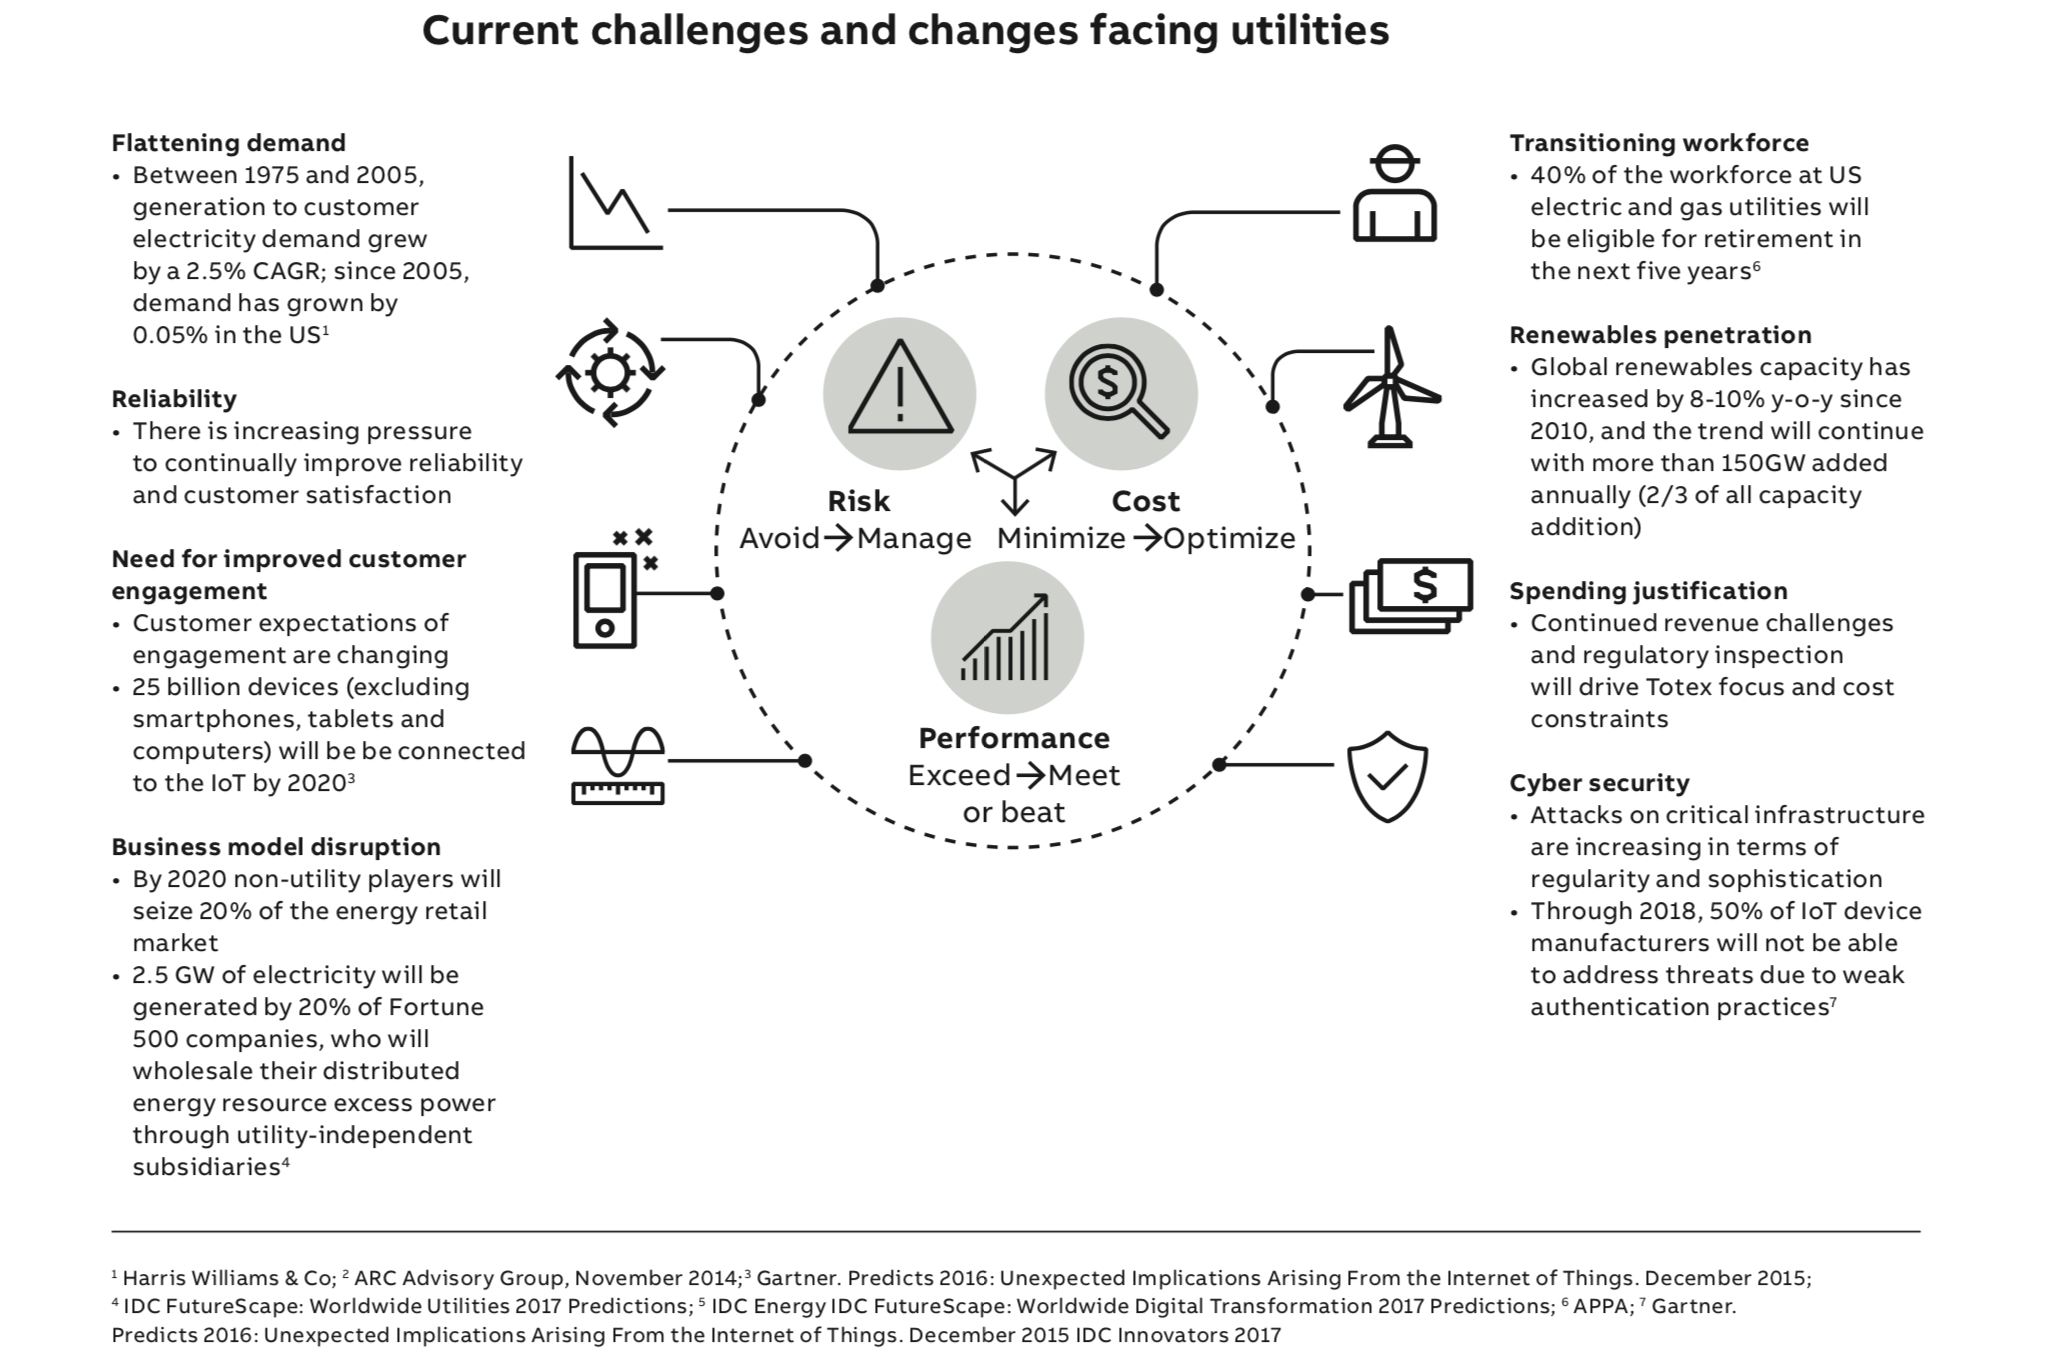 challenges for utilities – Create a culture of innovation with IIoT